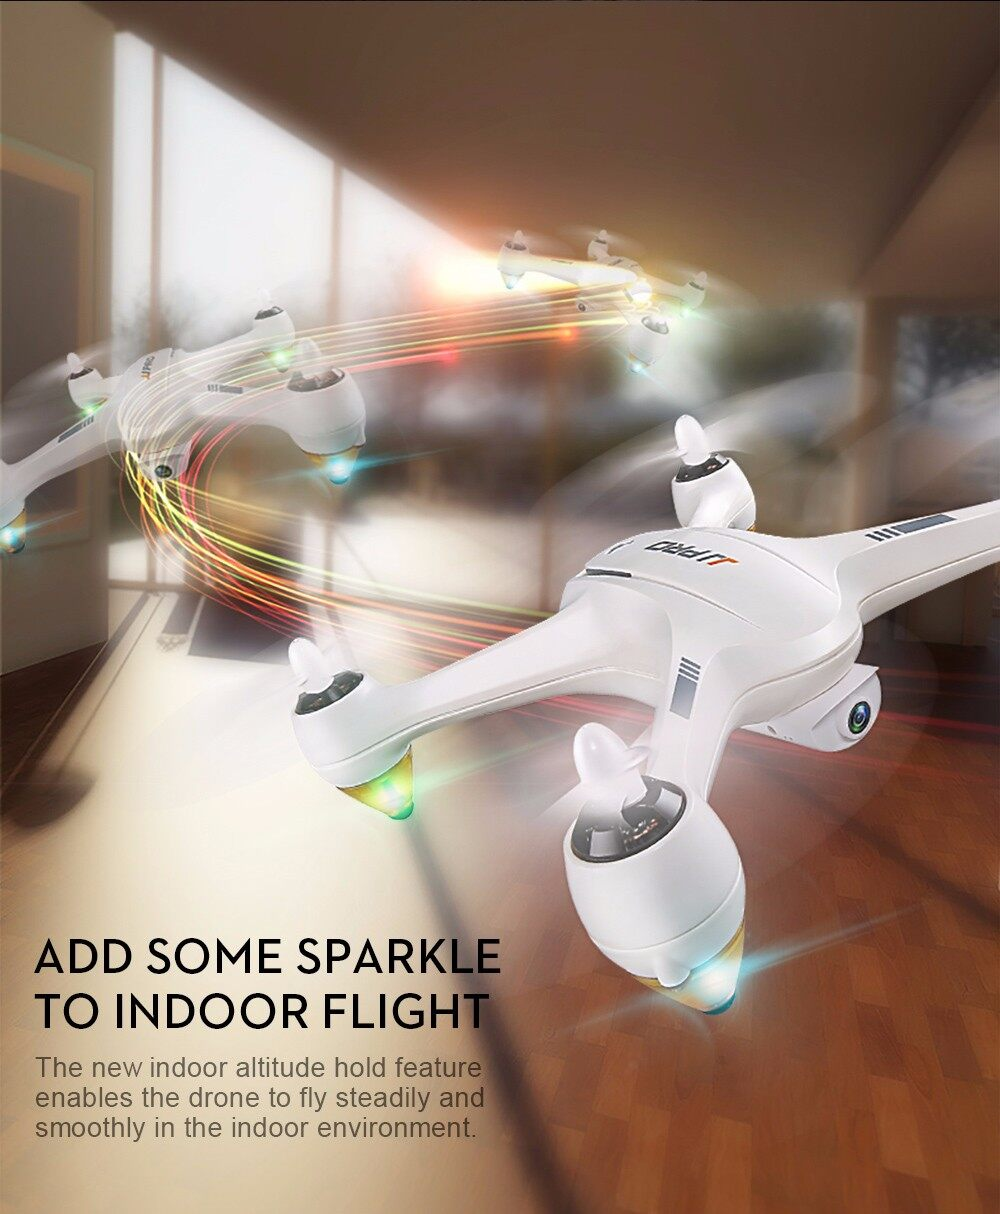 JJRC JJPRO X3 GPS Brushless RC Drone RTF WiFi FPV 1080P Full HD / Headless Mode / Indoor Altitude Hold